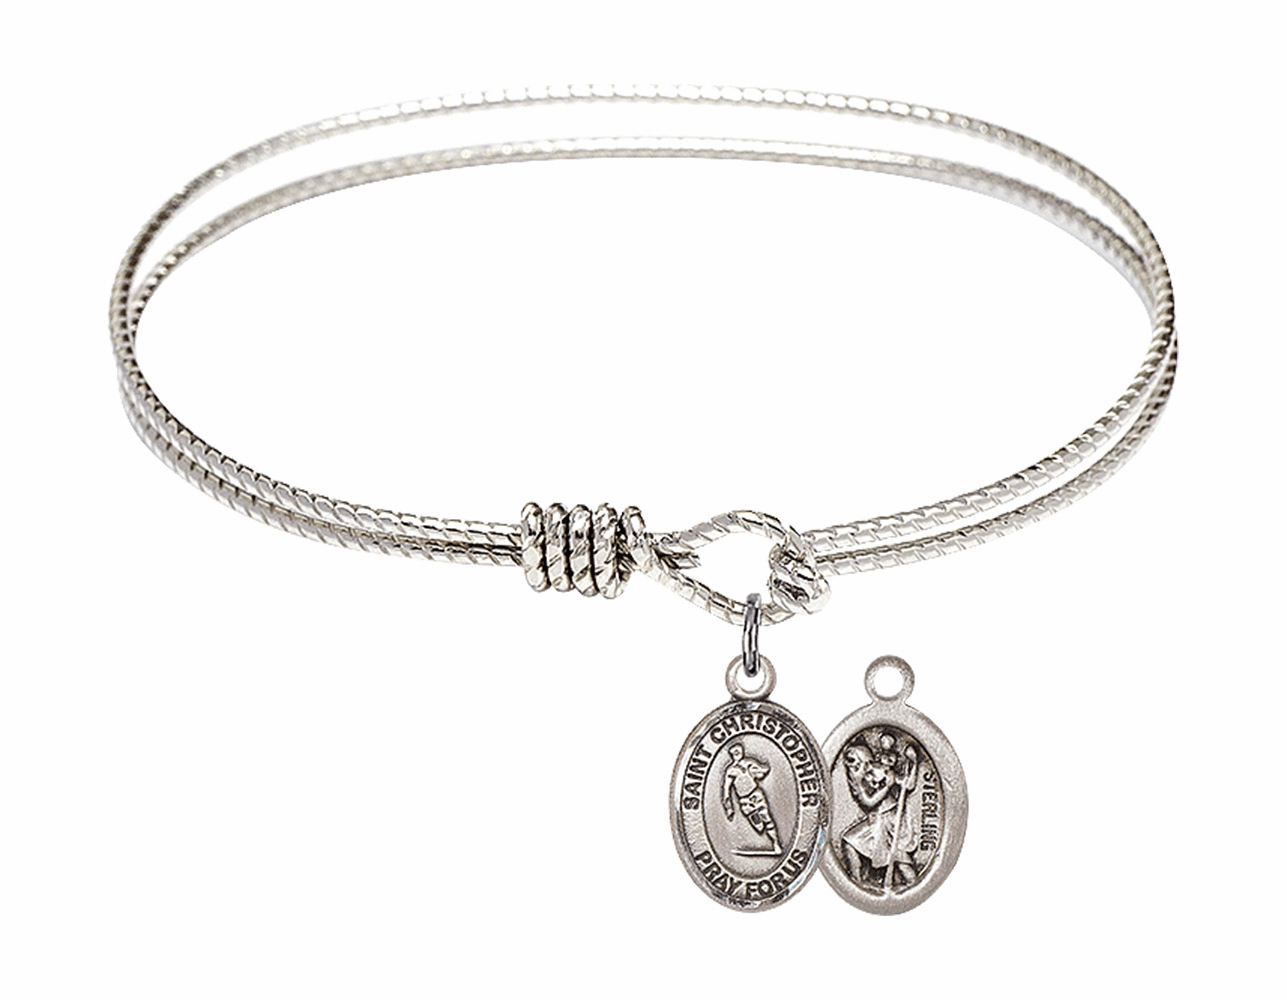 Twist Round Eye Hook St Christopher Rugby Bangle Charm Bracelet by Bliss